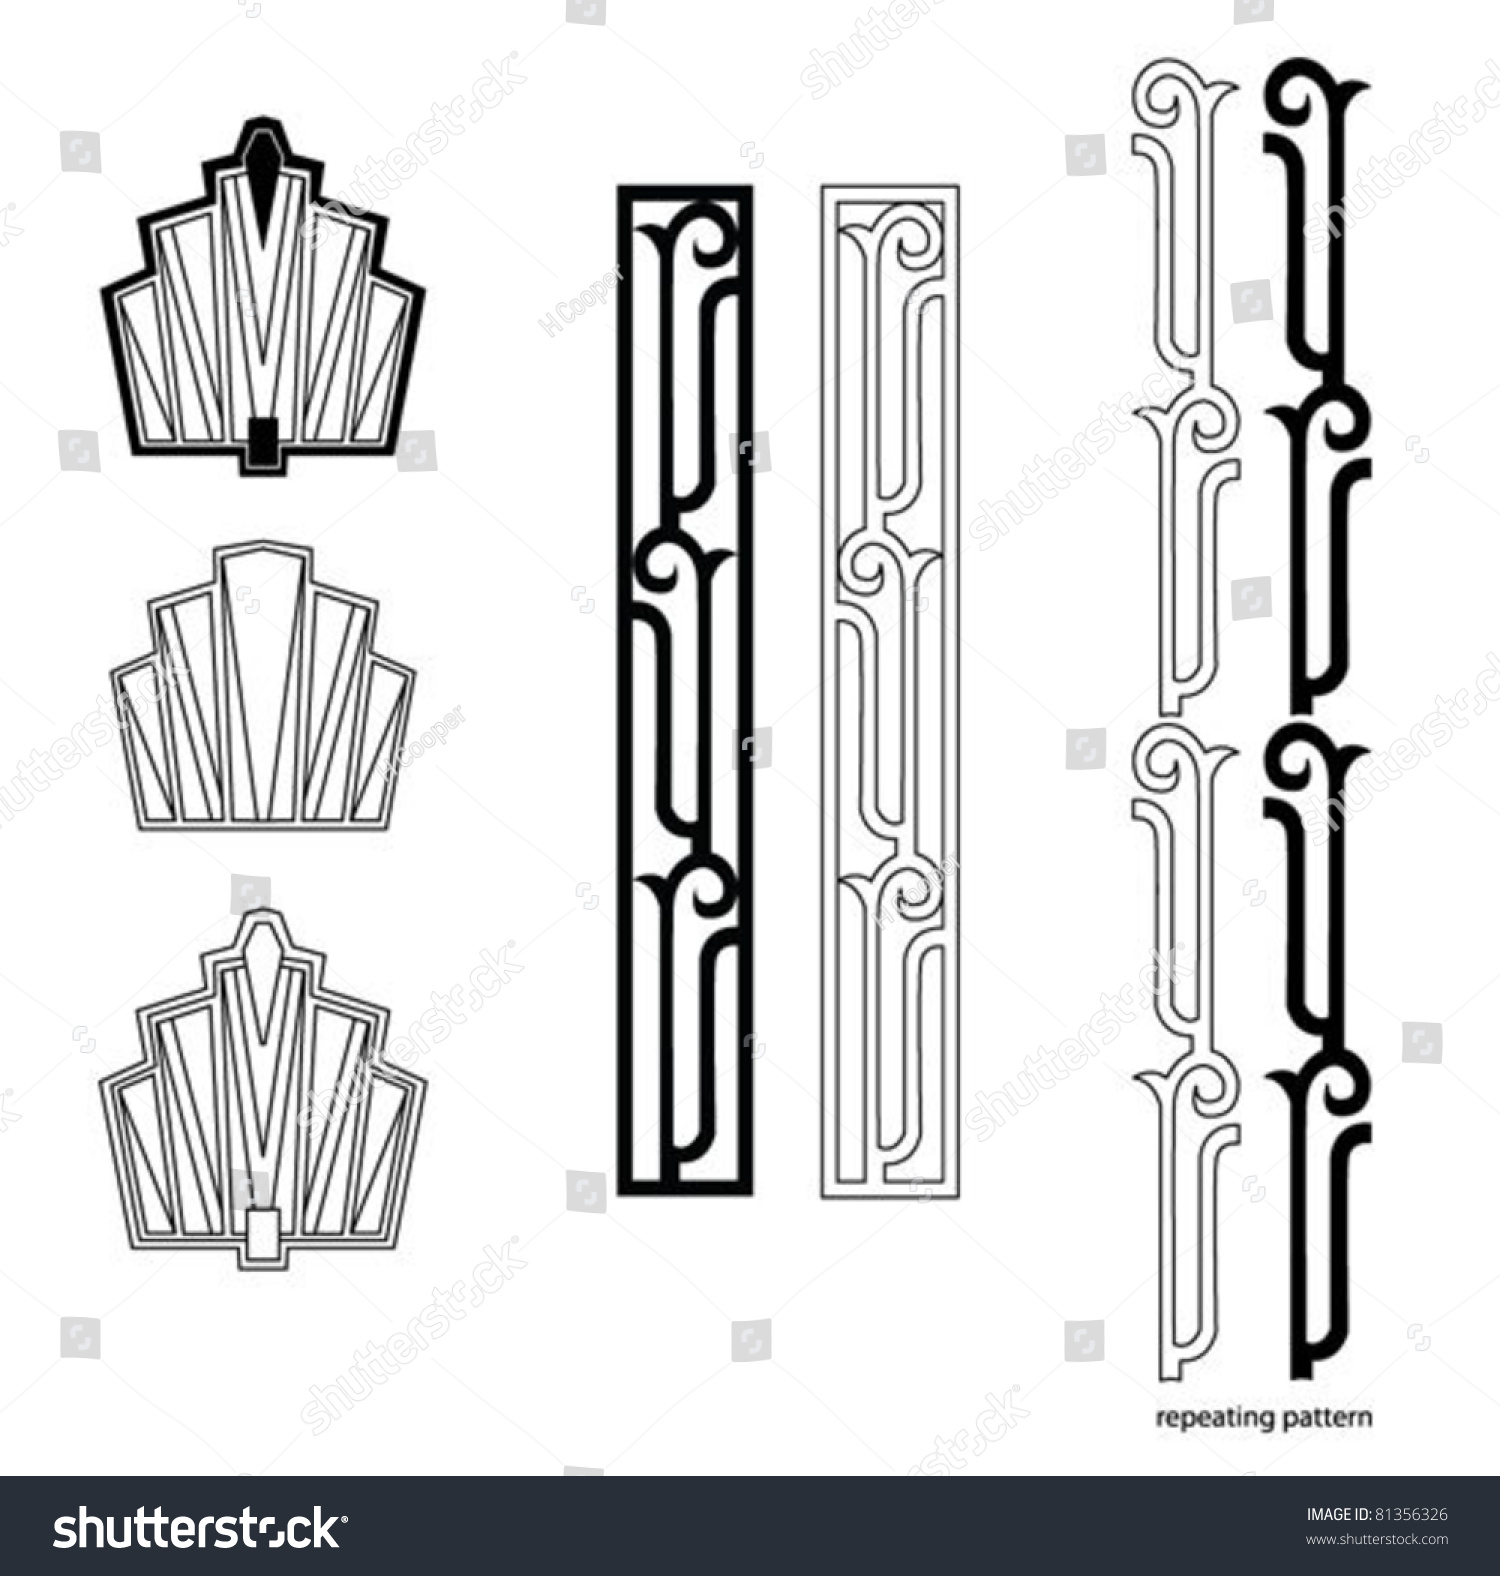 Designer Deko Art Deco Design Elements Stock Vector 81356326 Shutterstock